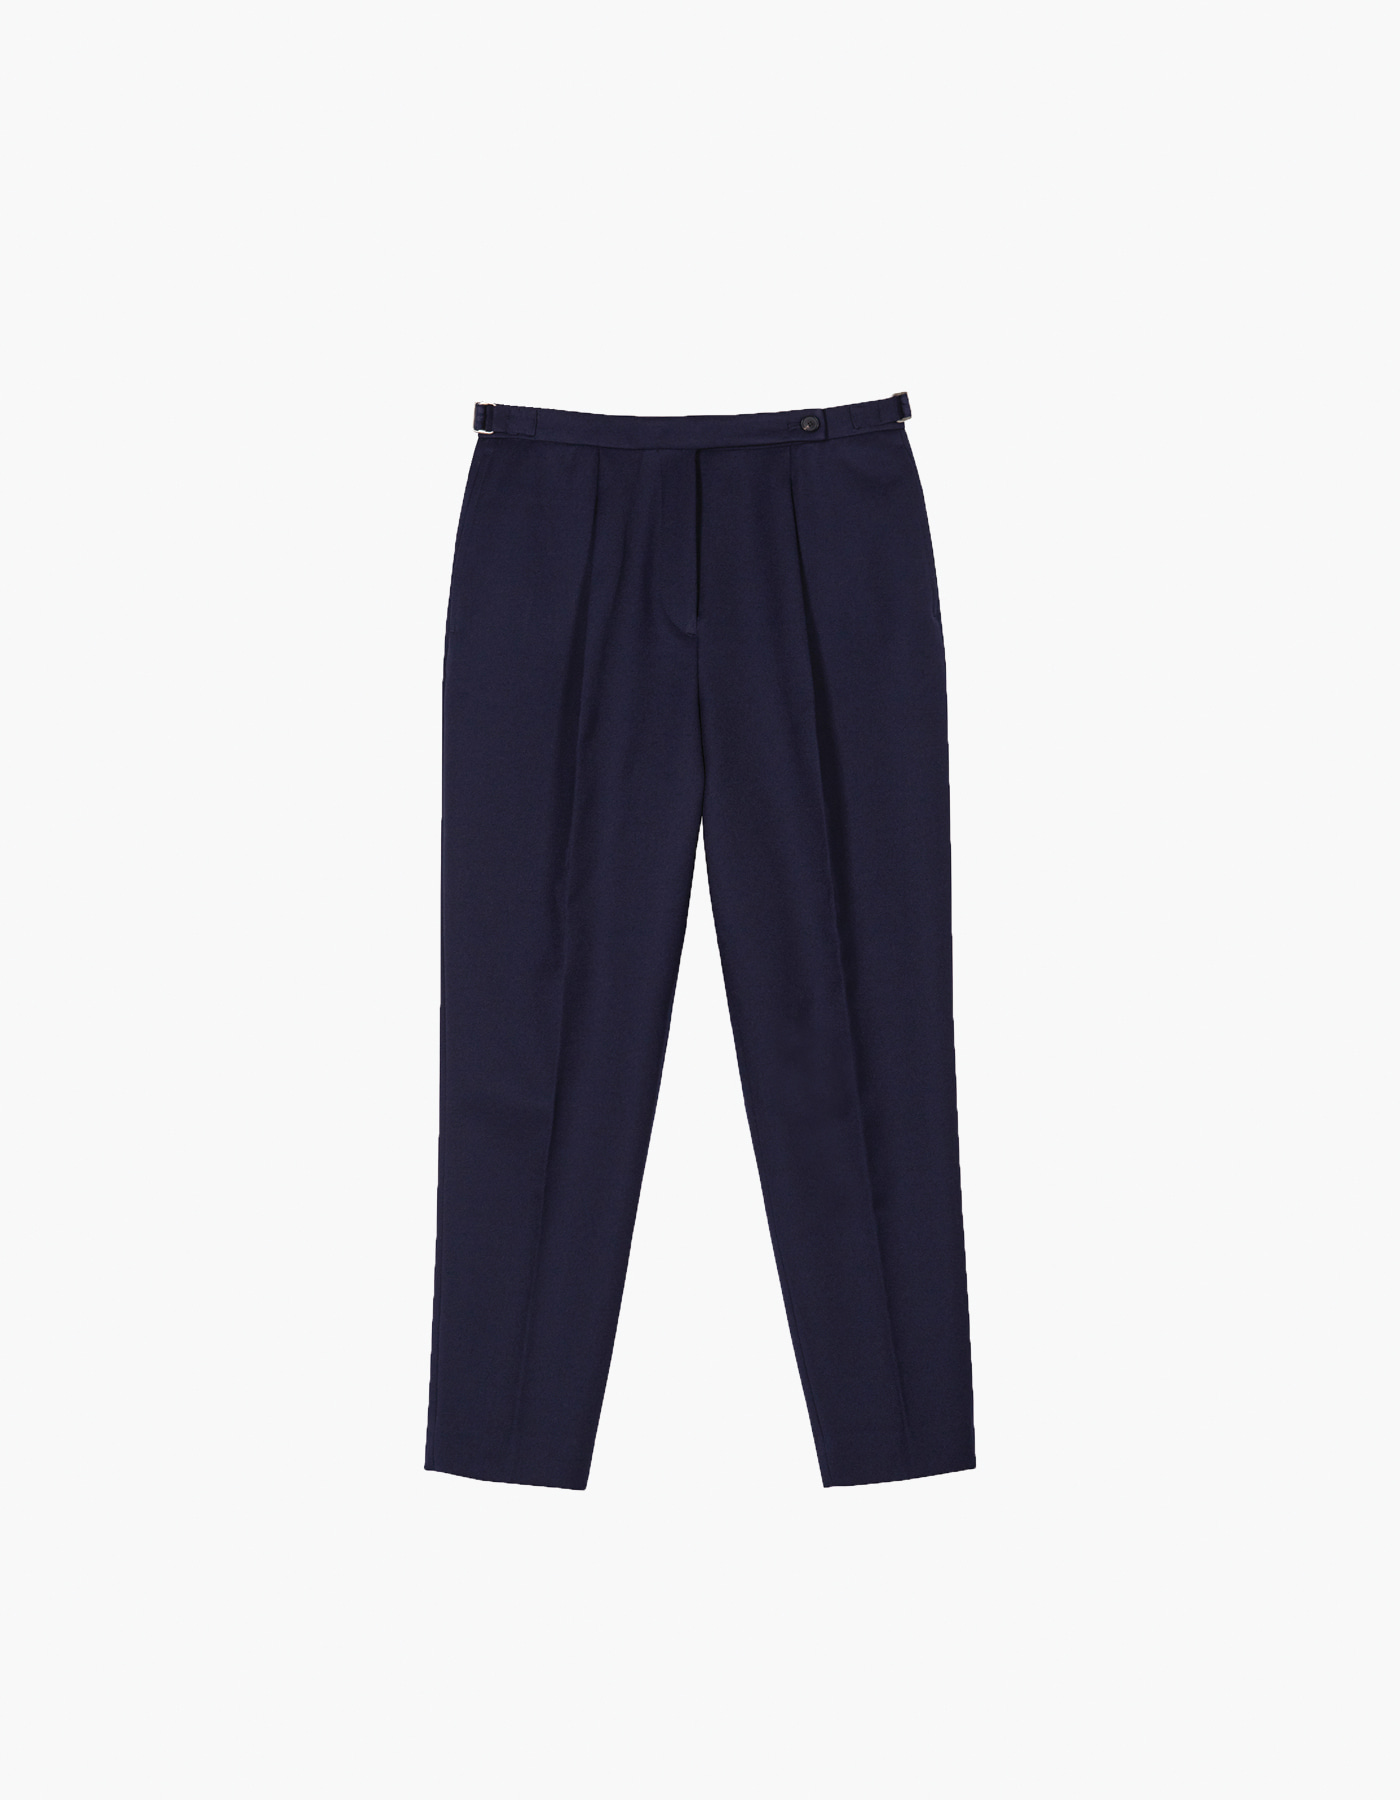 SARTORIA JUN TECHNIQUE X HERITAGEFLOSS PANTS (W) / NAVY